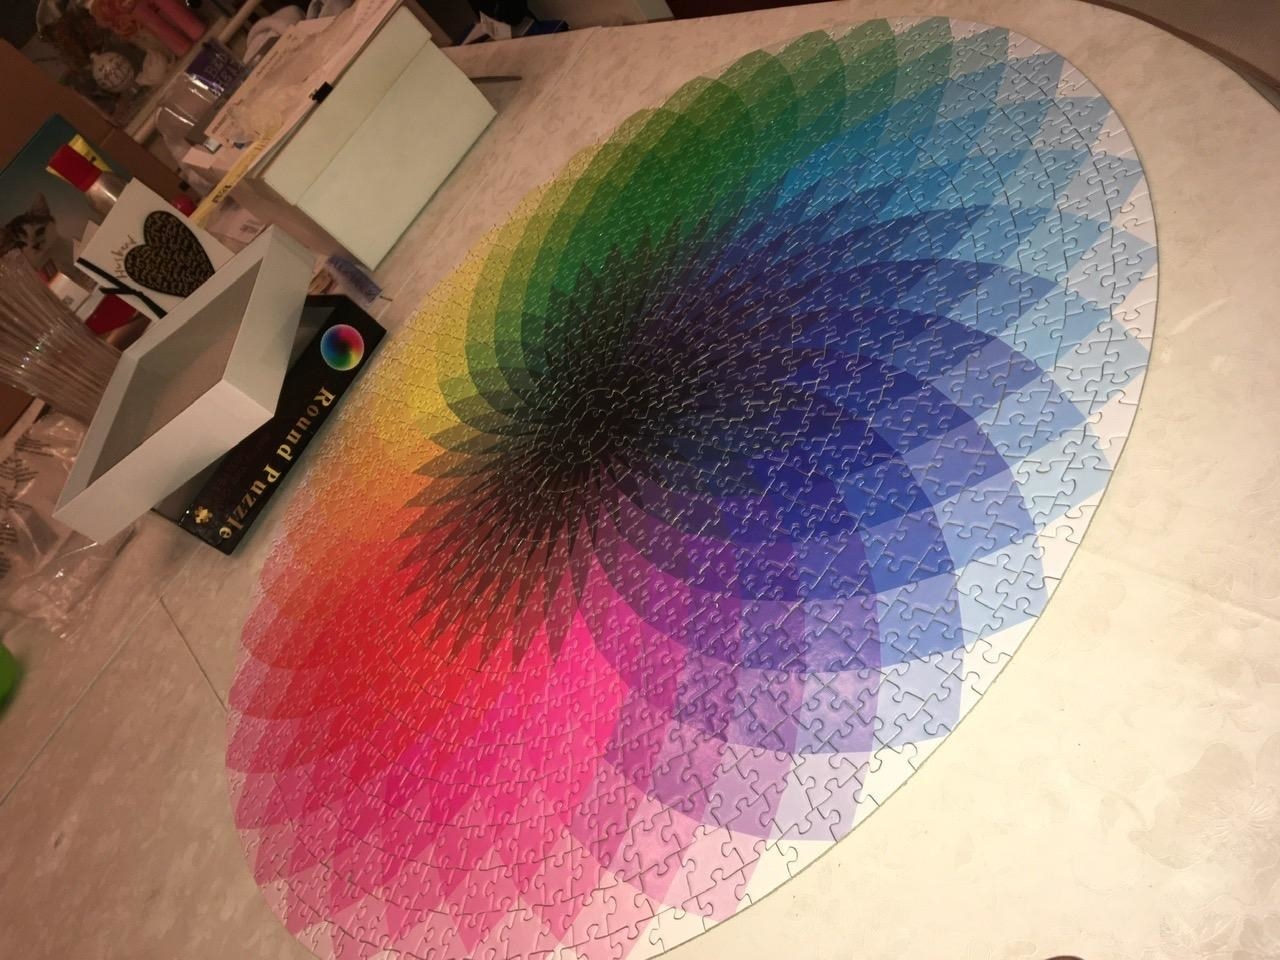 A reviewer image of the completed puzzle. The circle has a fan of different colors with a black center